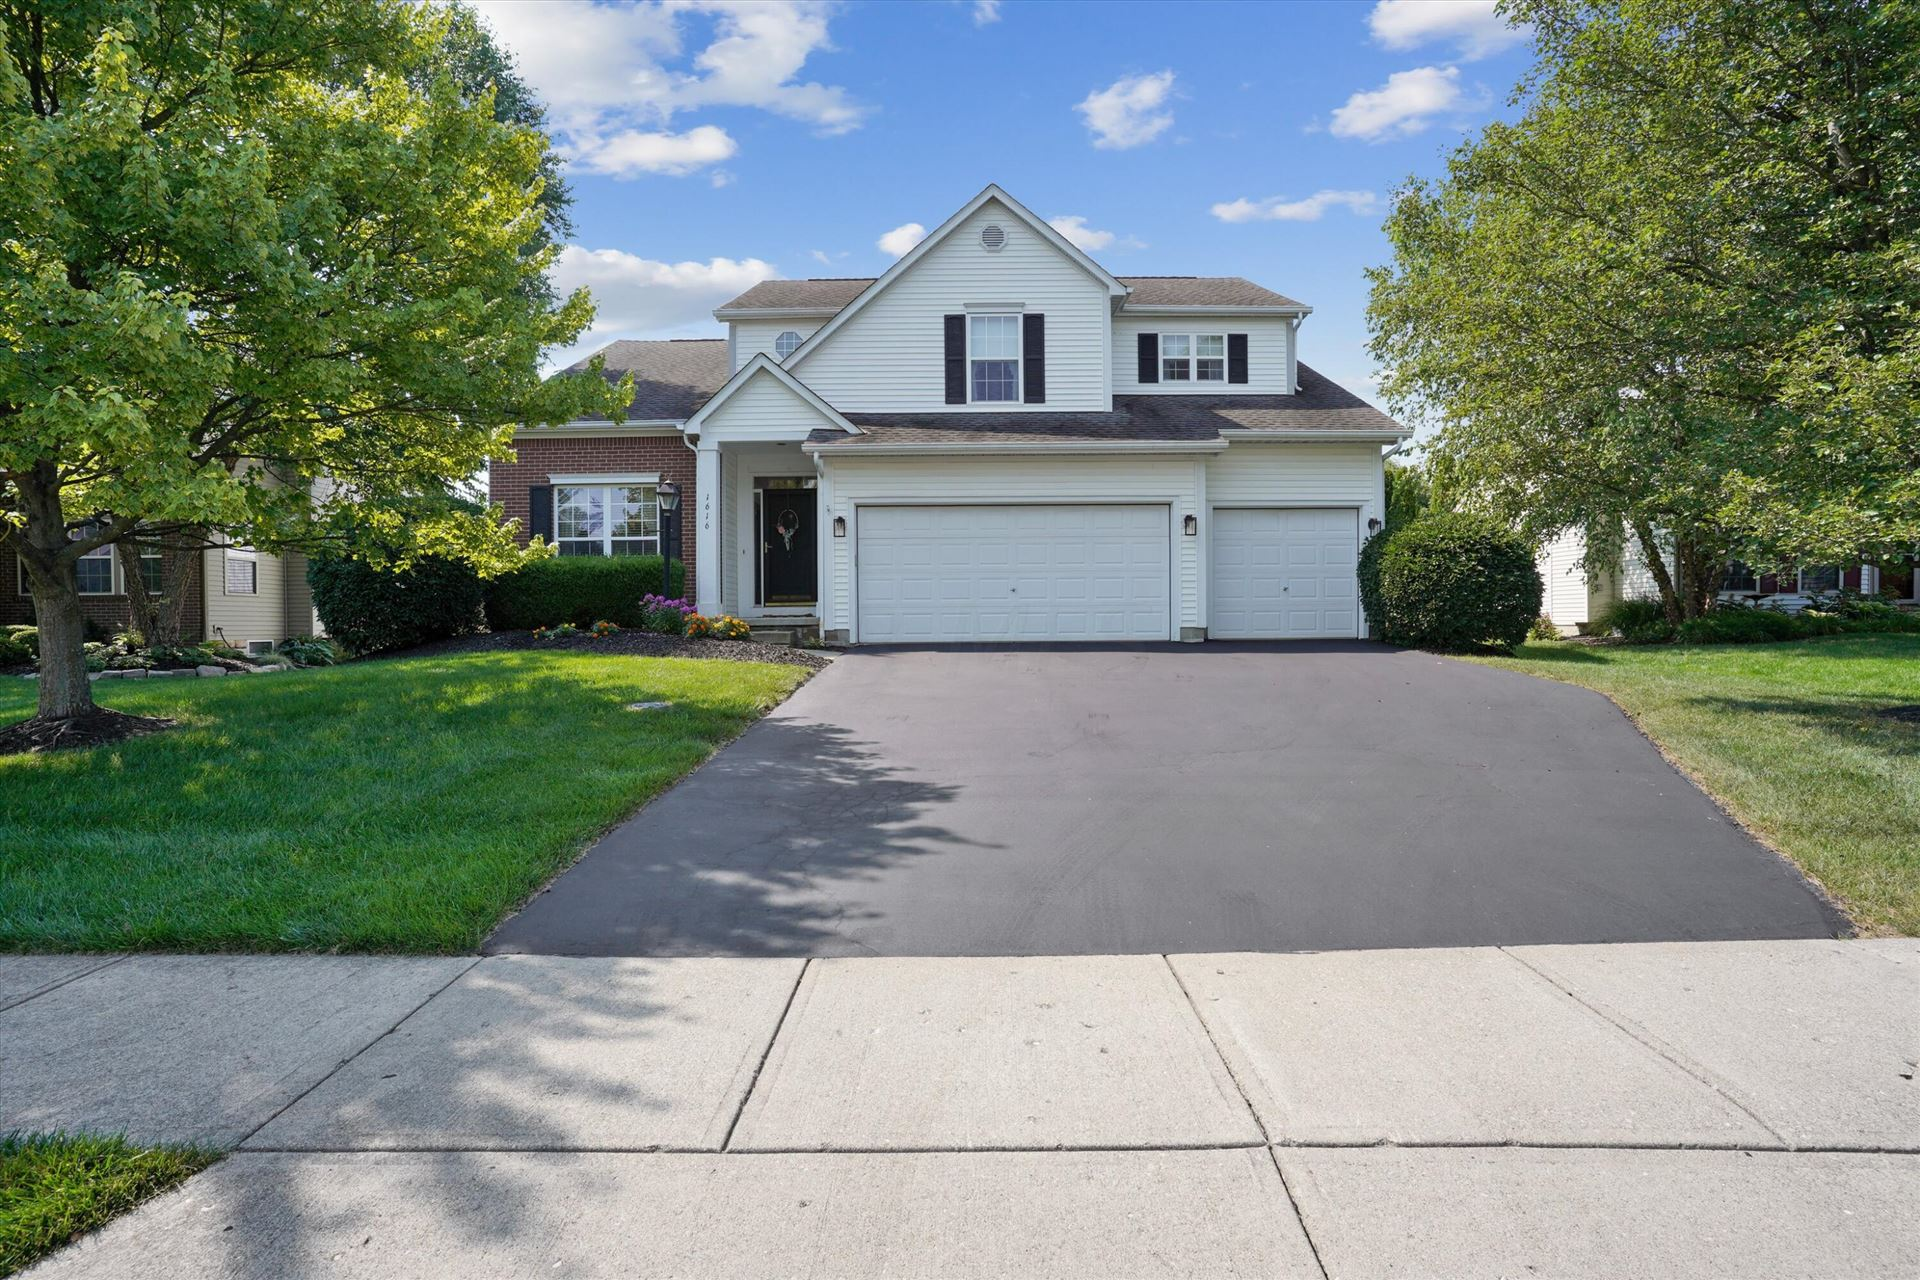 Photo for 1616 Aniko Avenue, Lewis Center, OH 43035 (MLS # 221029588)